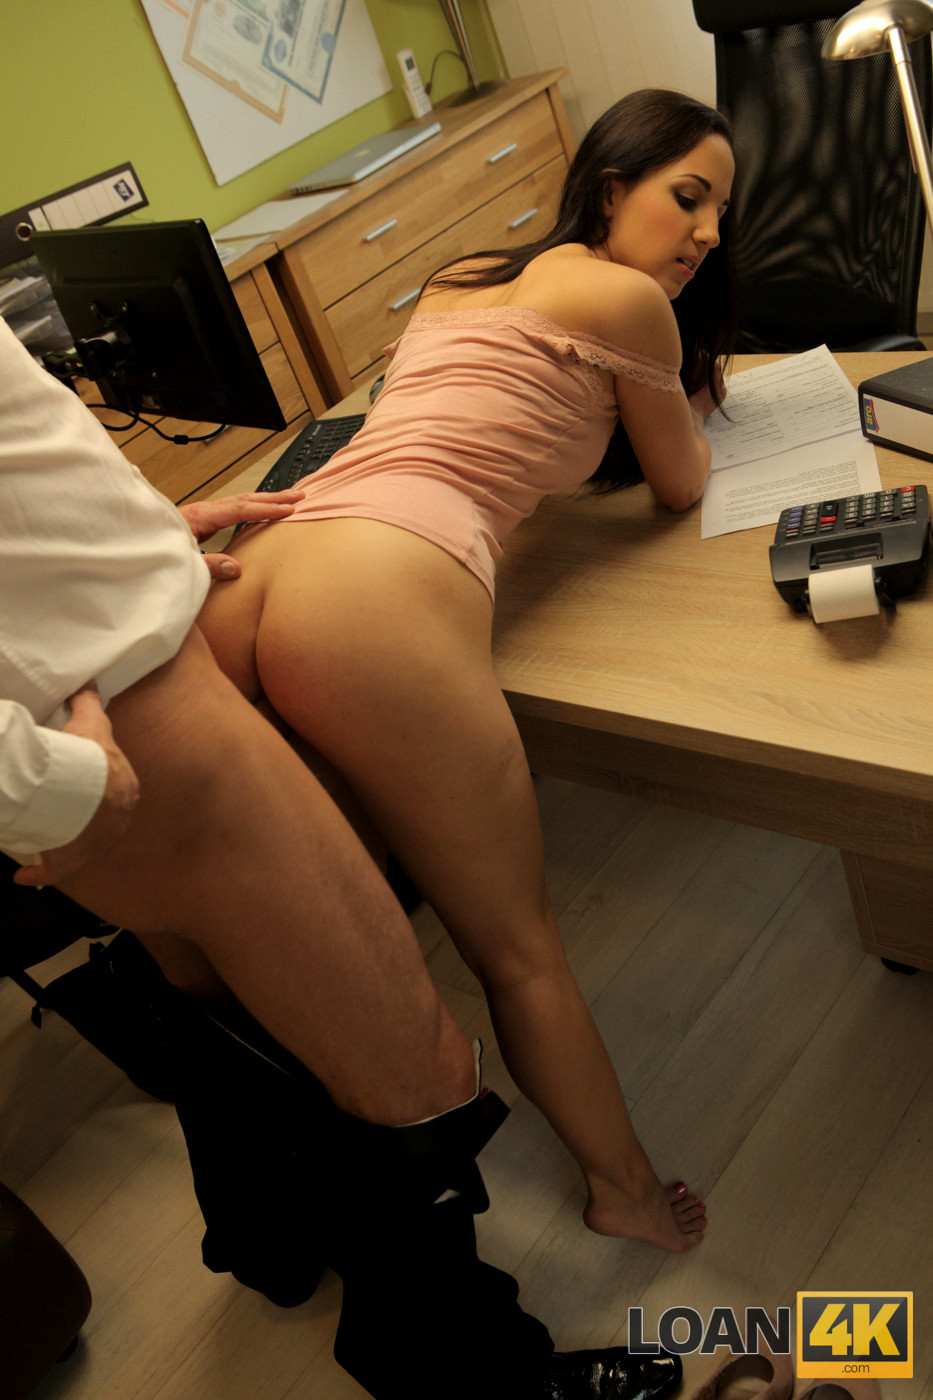 Loan4k. elis passes dirty casting in loan agency with strange man